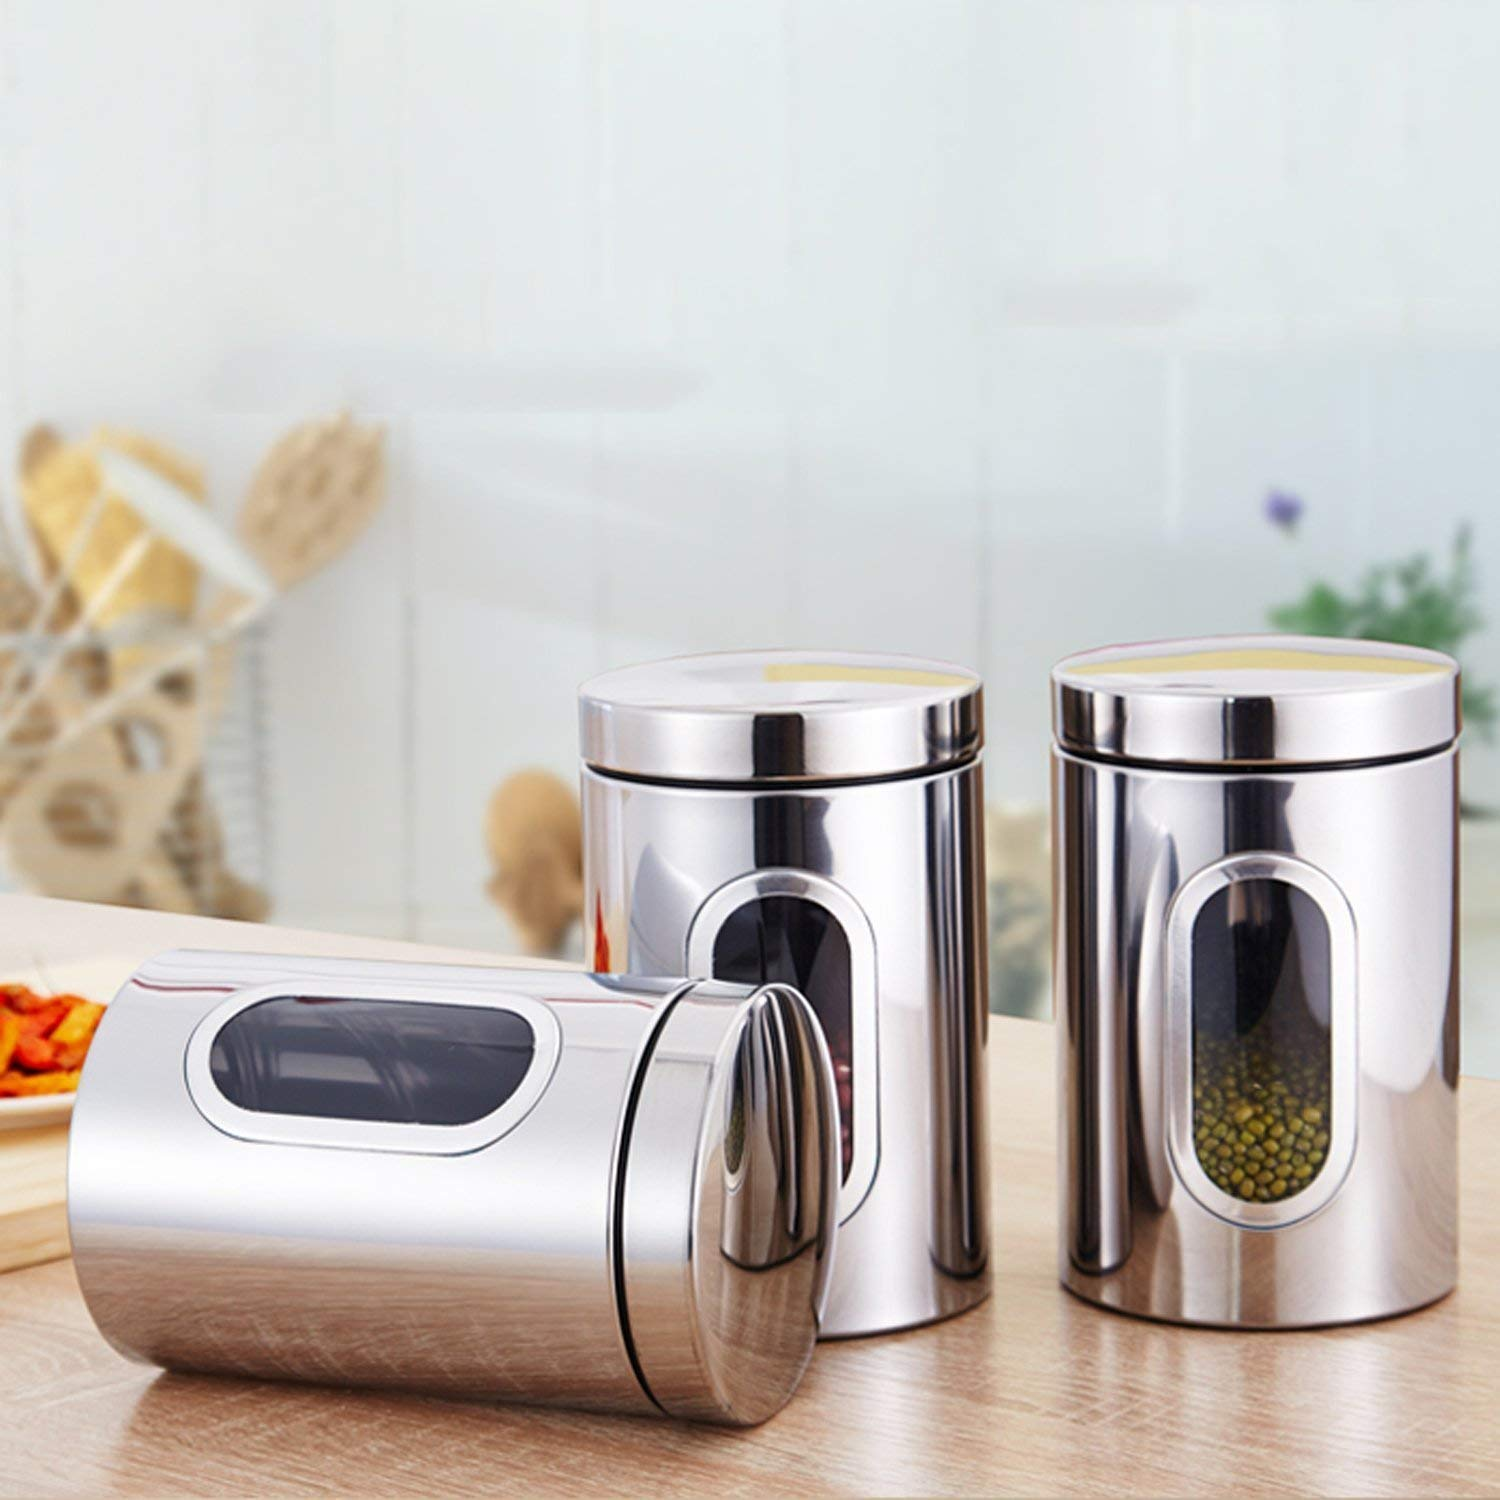 cheap kitchen canister sets cheap unique kitchen canister sets find unique kitchen canister sets deals on line at alibaba com 4208